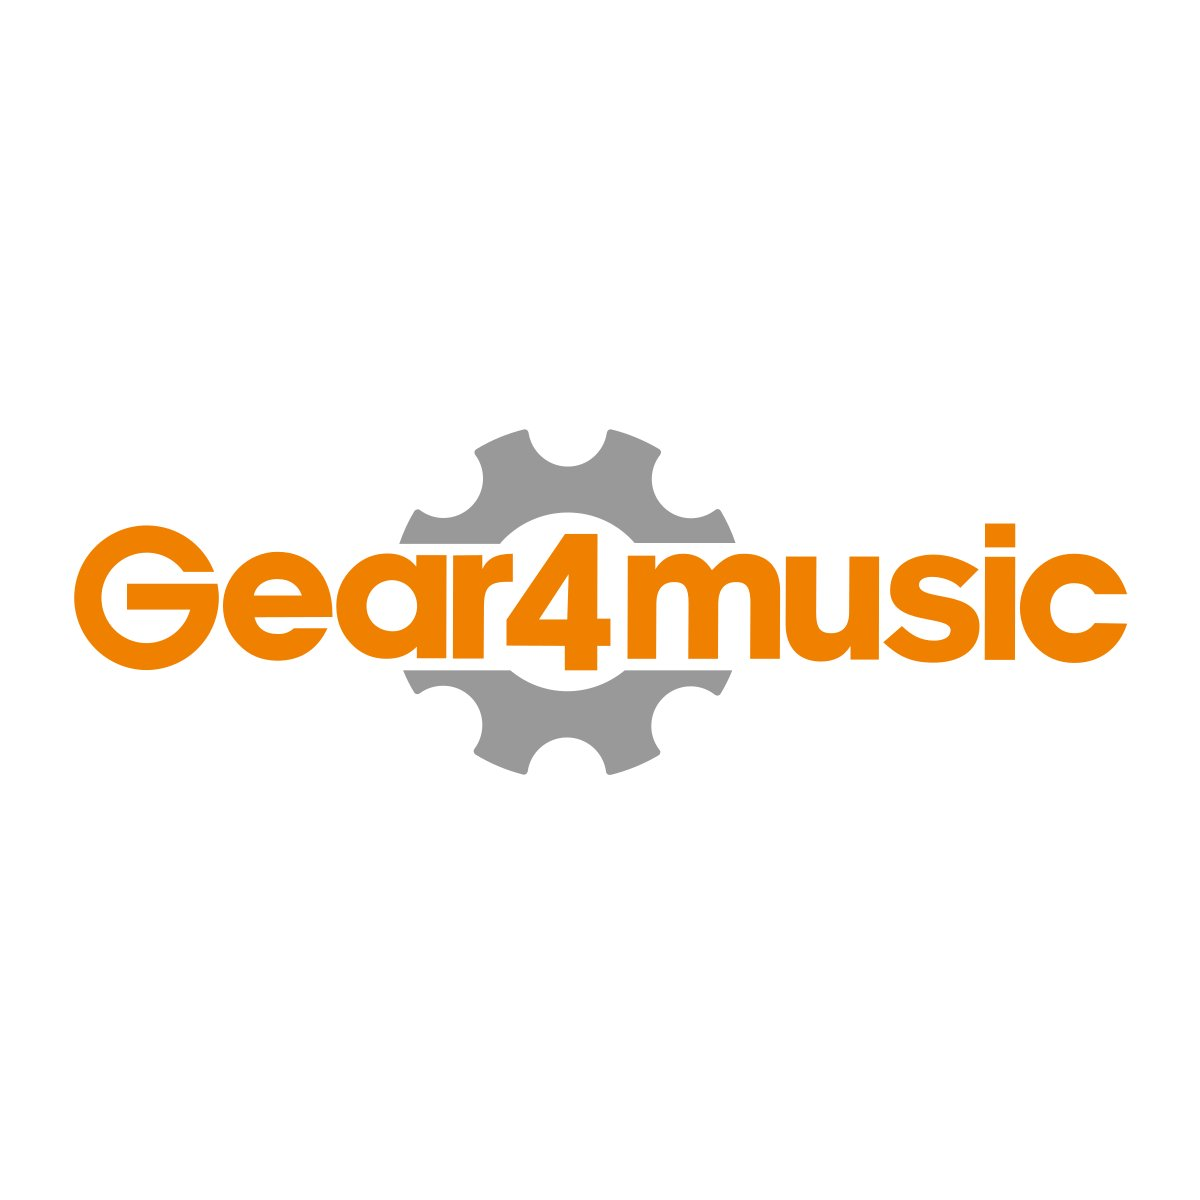 behringer djx900 pro usb dj mixer at gear4music. Black Bedroom Furniture Sets. Home Design Ideas